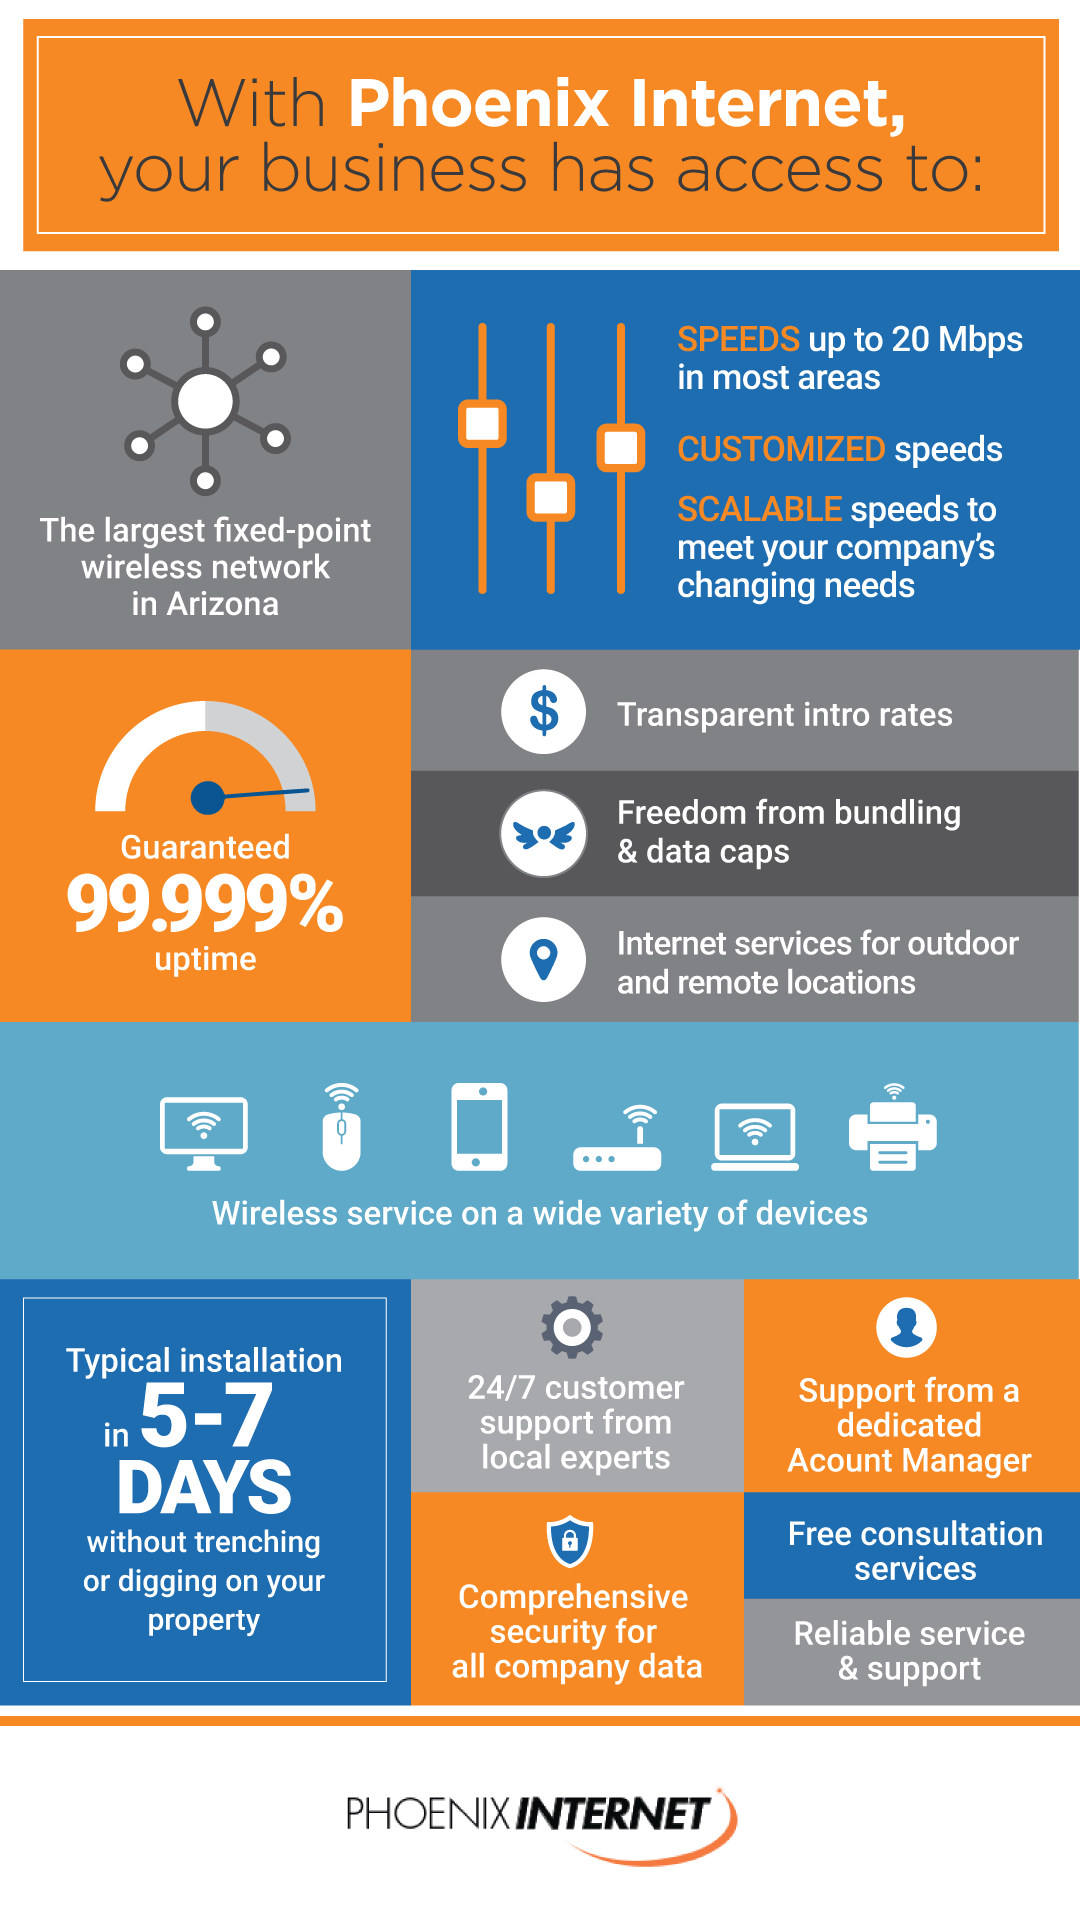 Superior Internet Service: Say Goodbye To Bundling & Data Caps [Infographic]